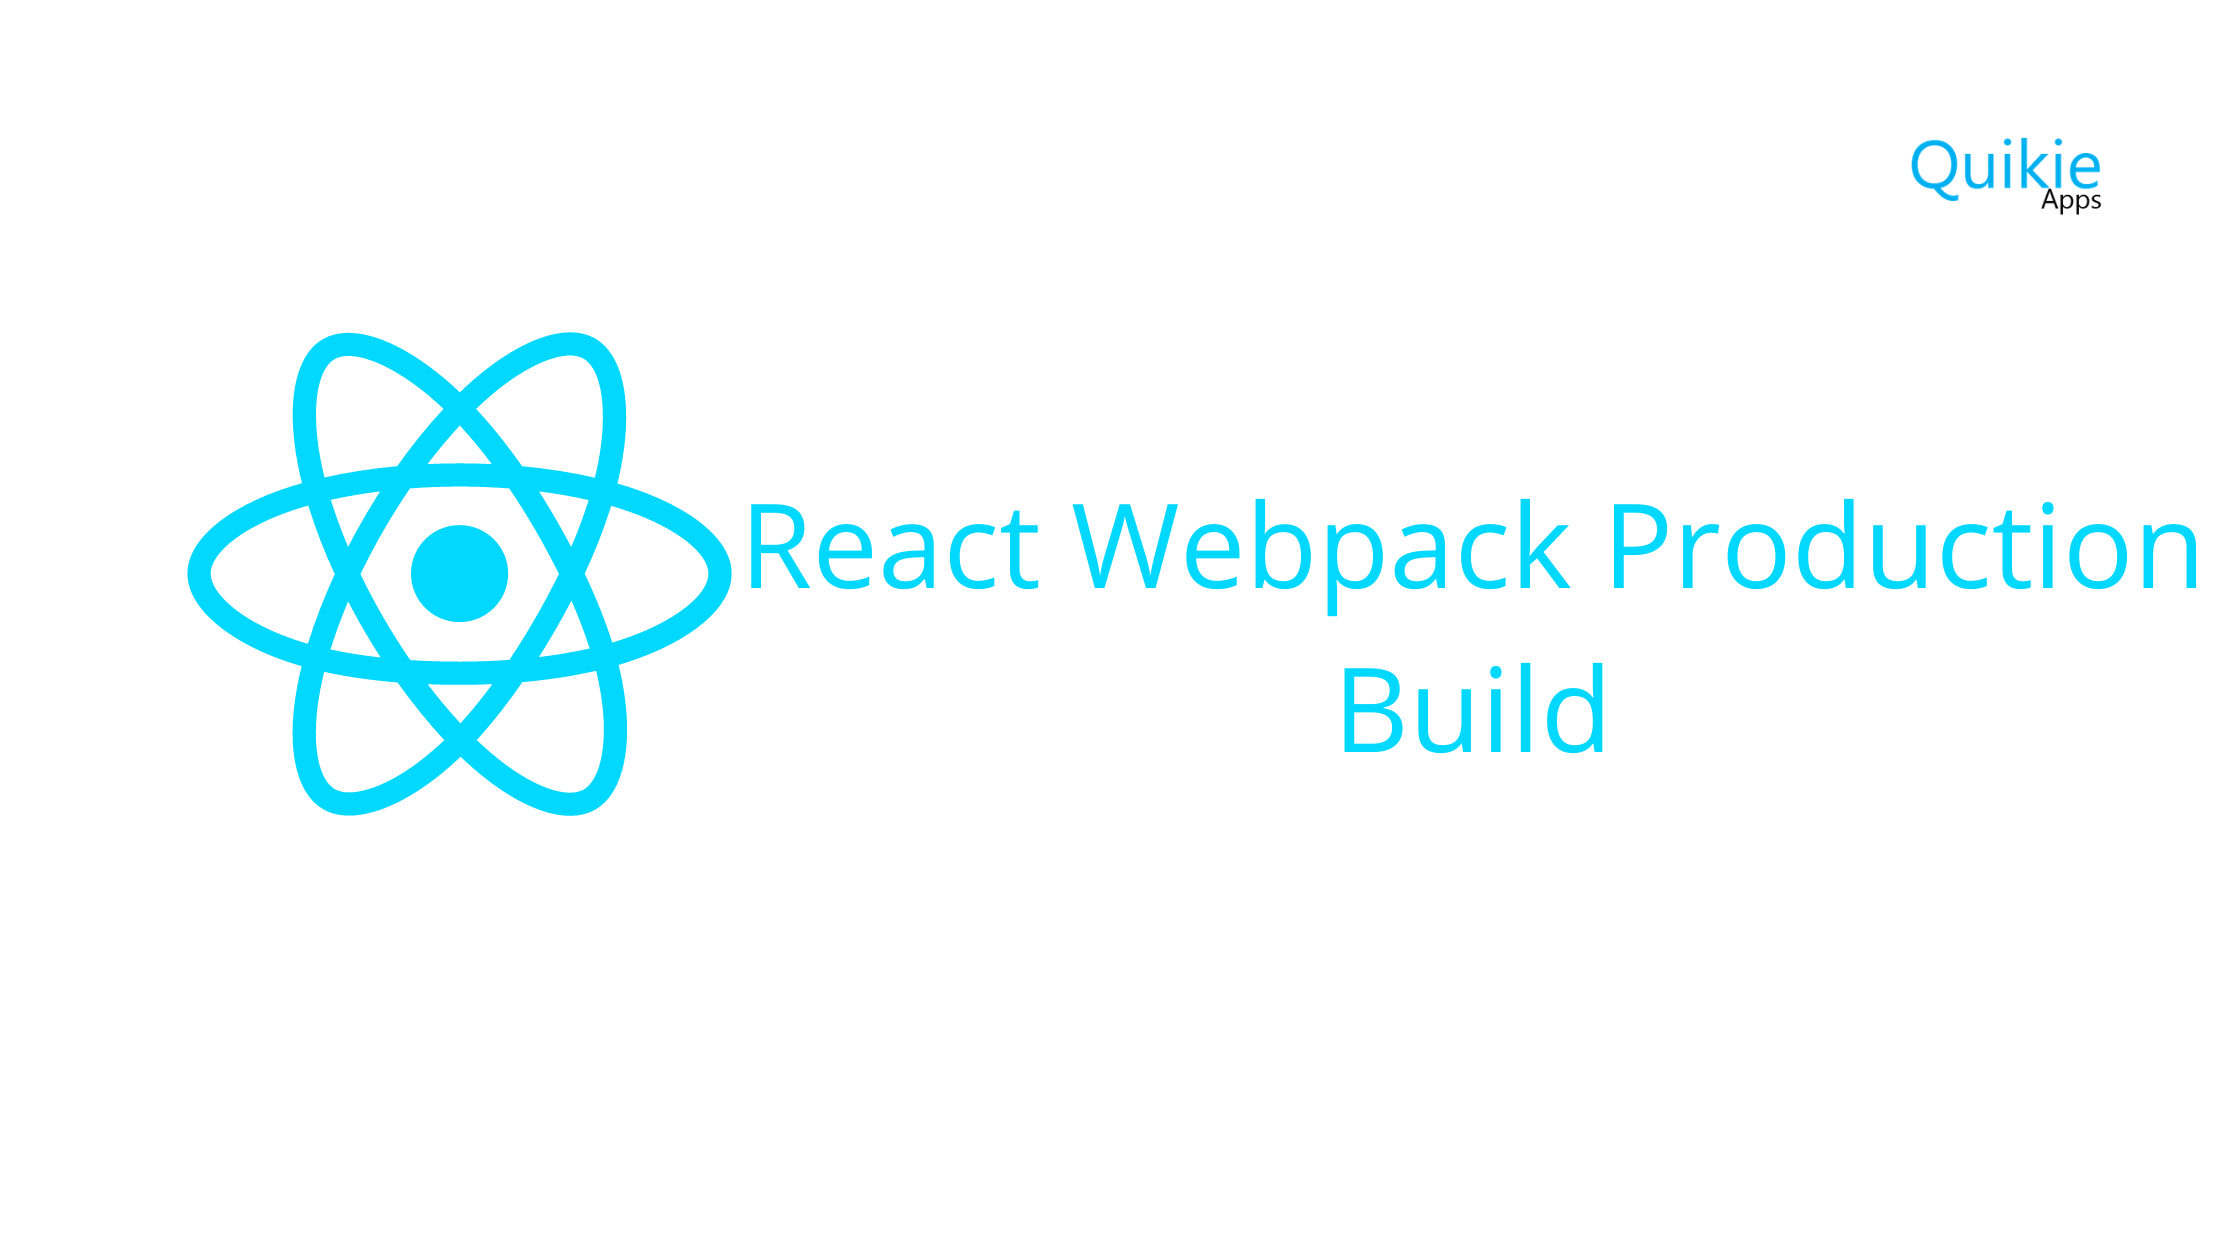 React Webpack Production Build